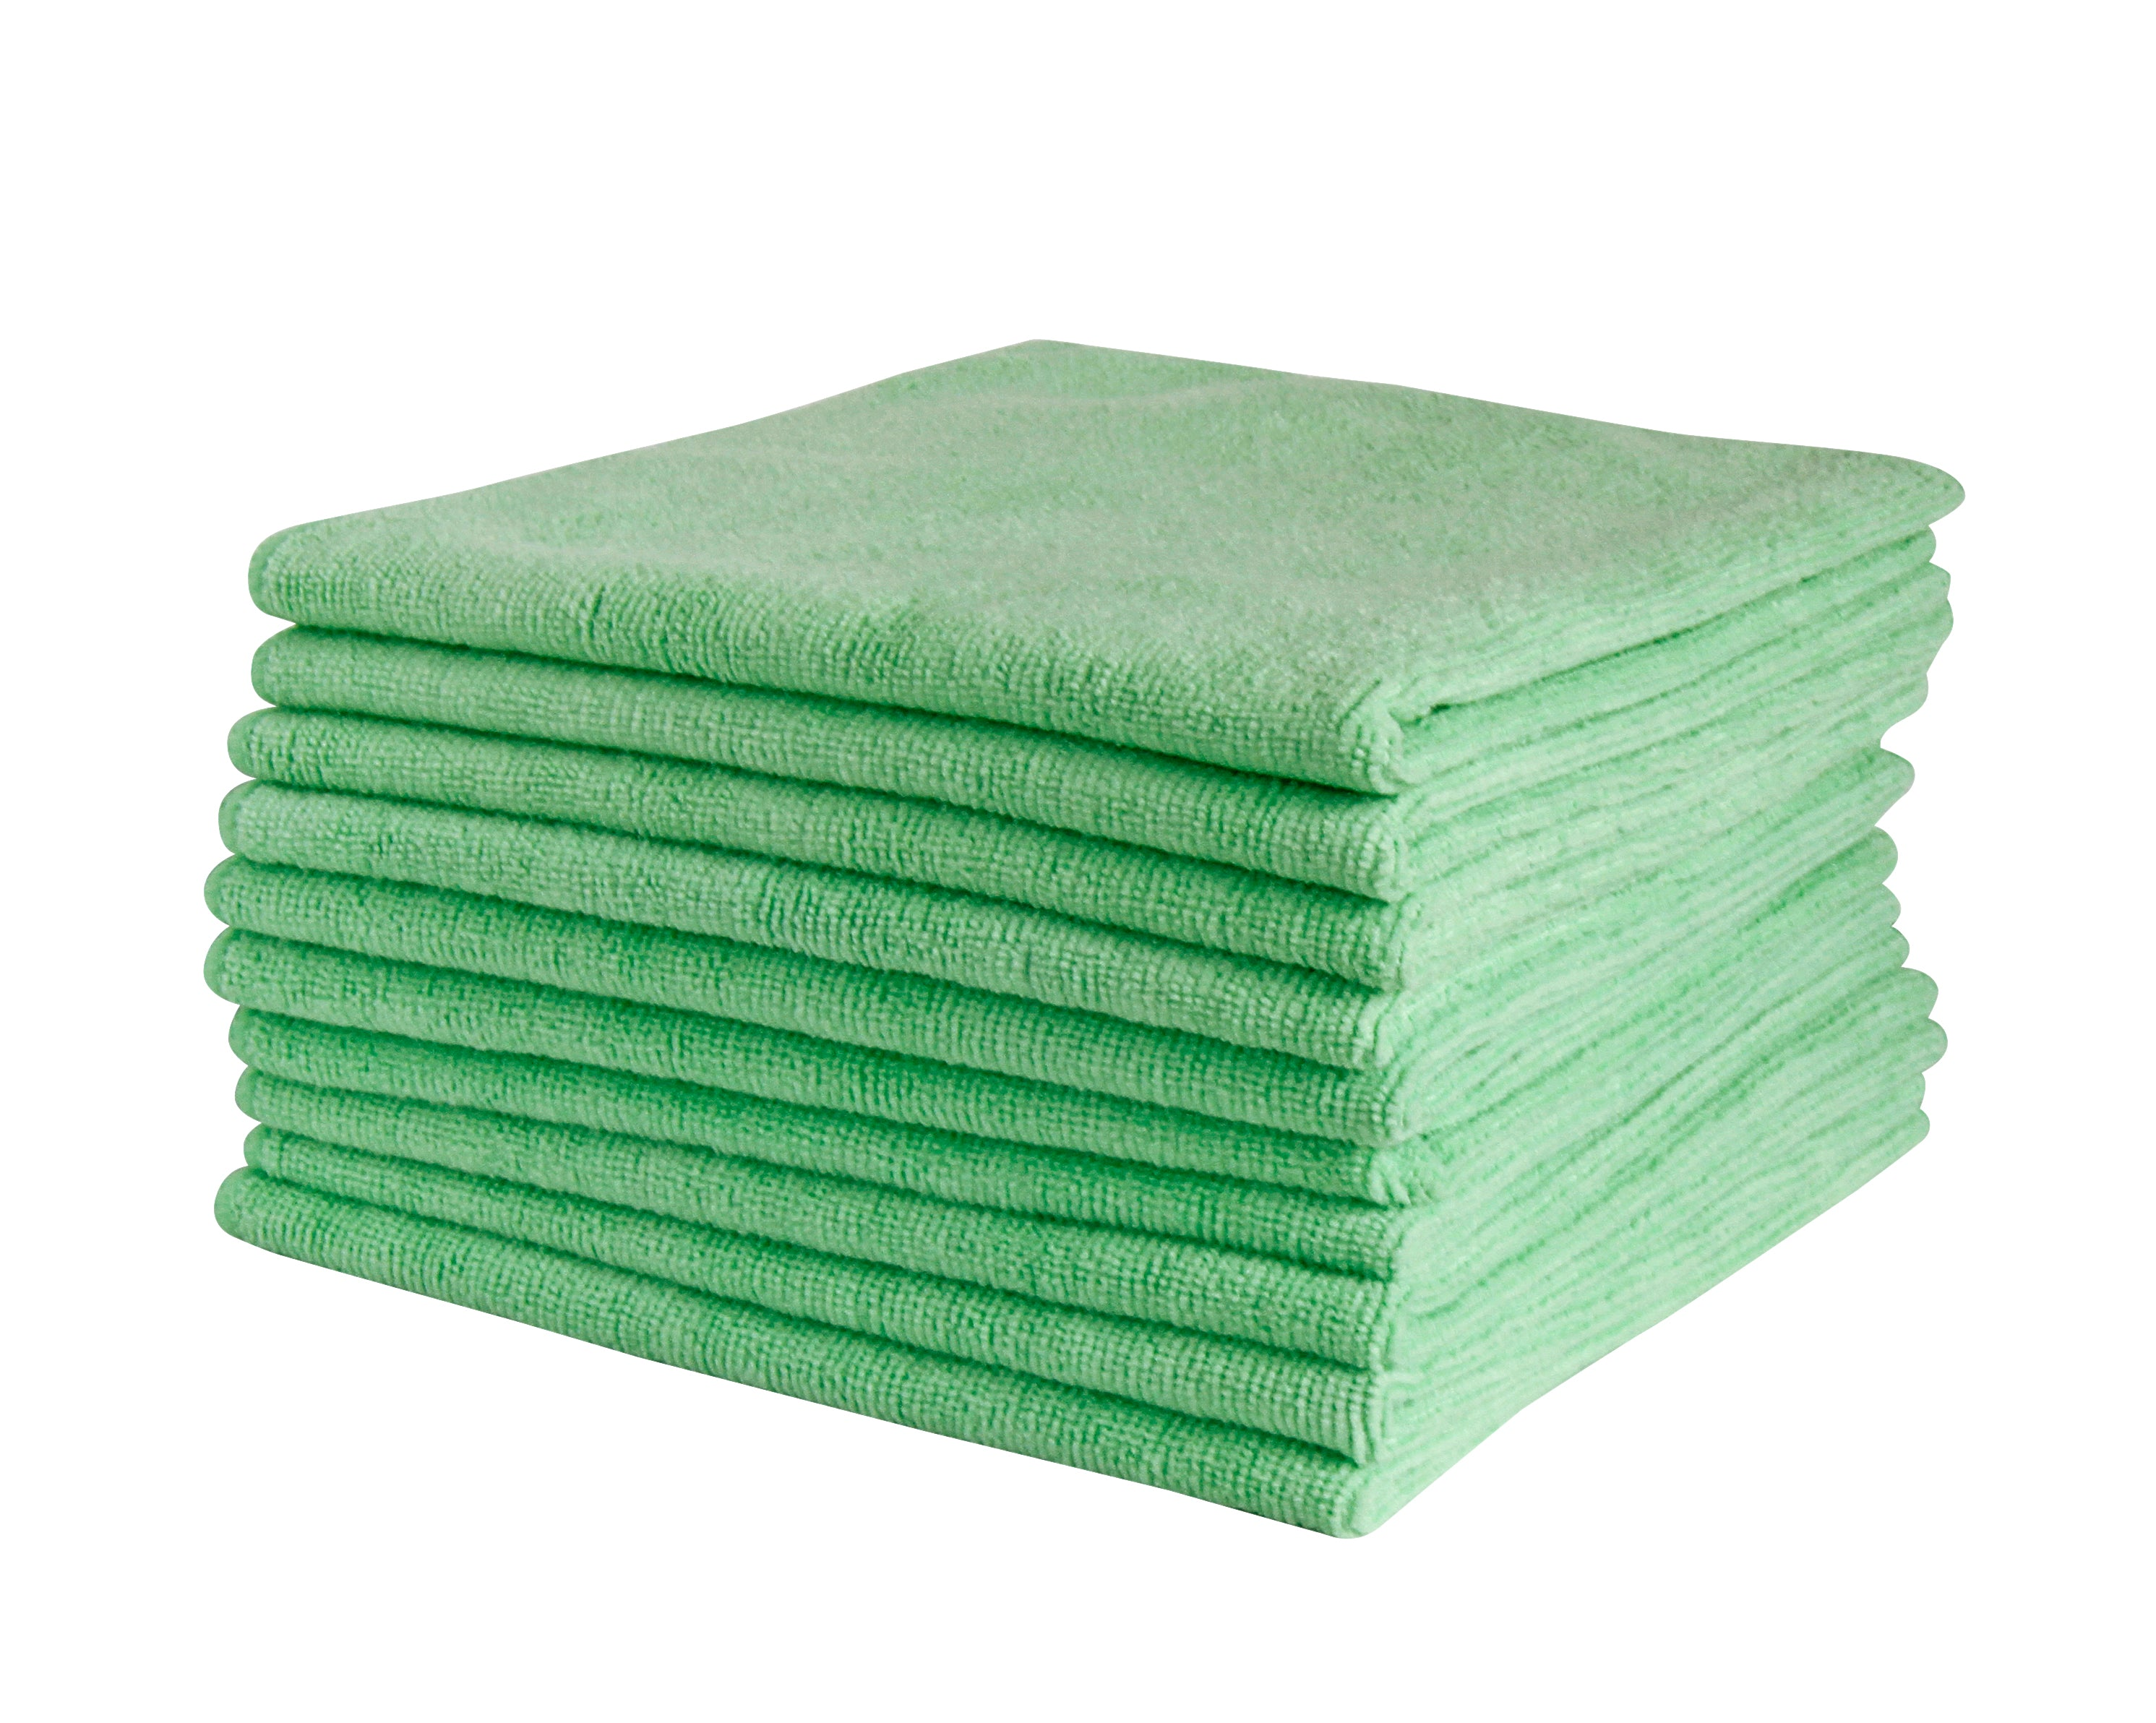 FILTA COMMERCIAL MICROFIBRE CLOTH Green 40cm x 40cm - Sold by Single Unit in multiples of 10